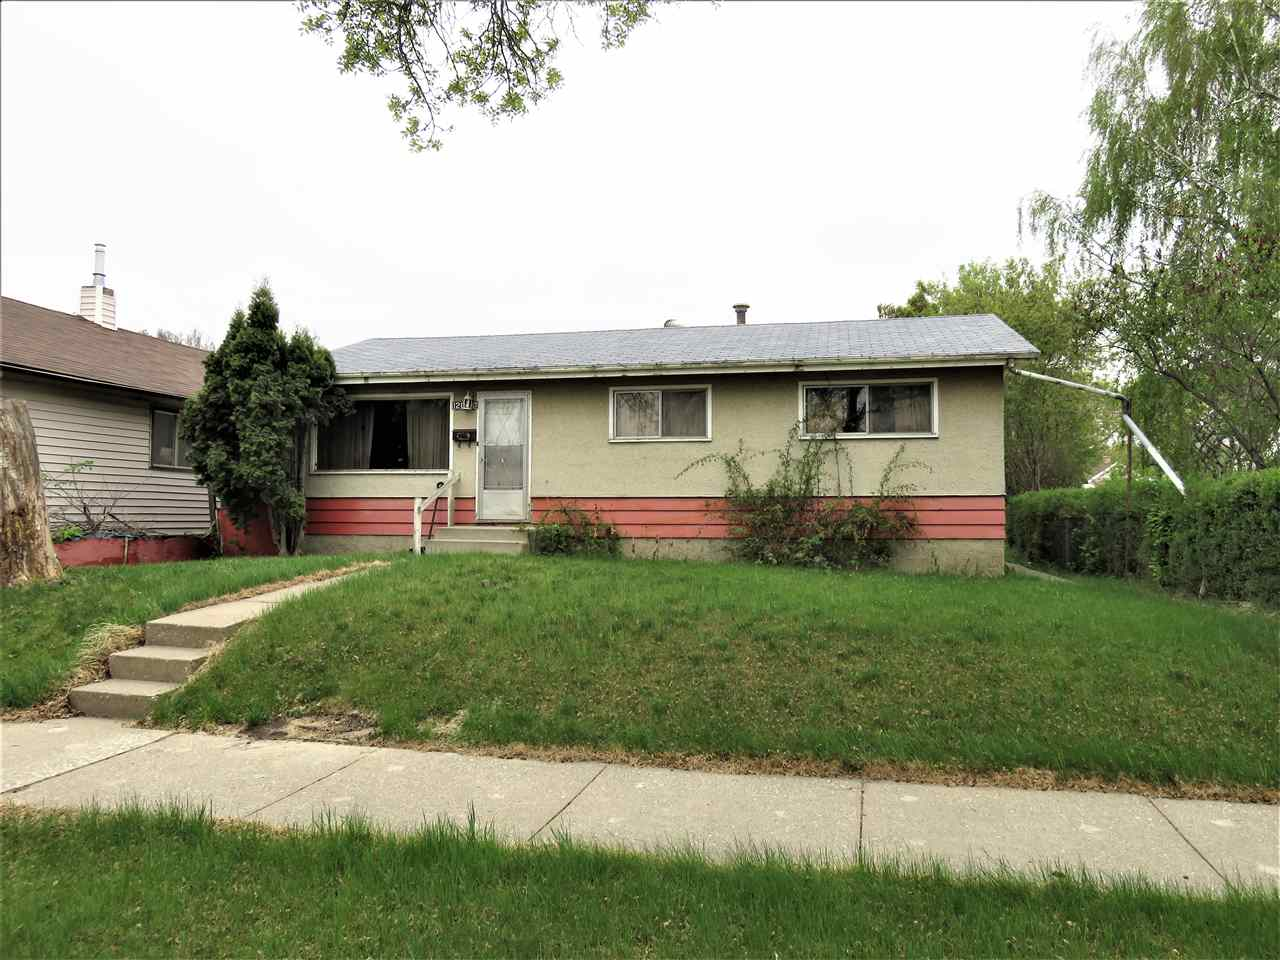 12010 39 Street, 4 bed, 1 bath, at $199,000